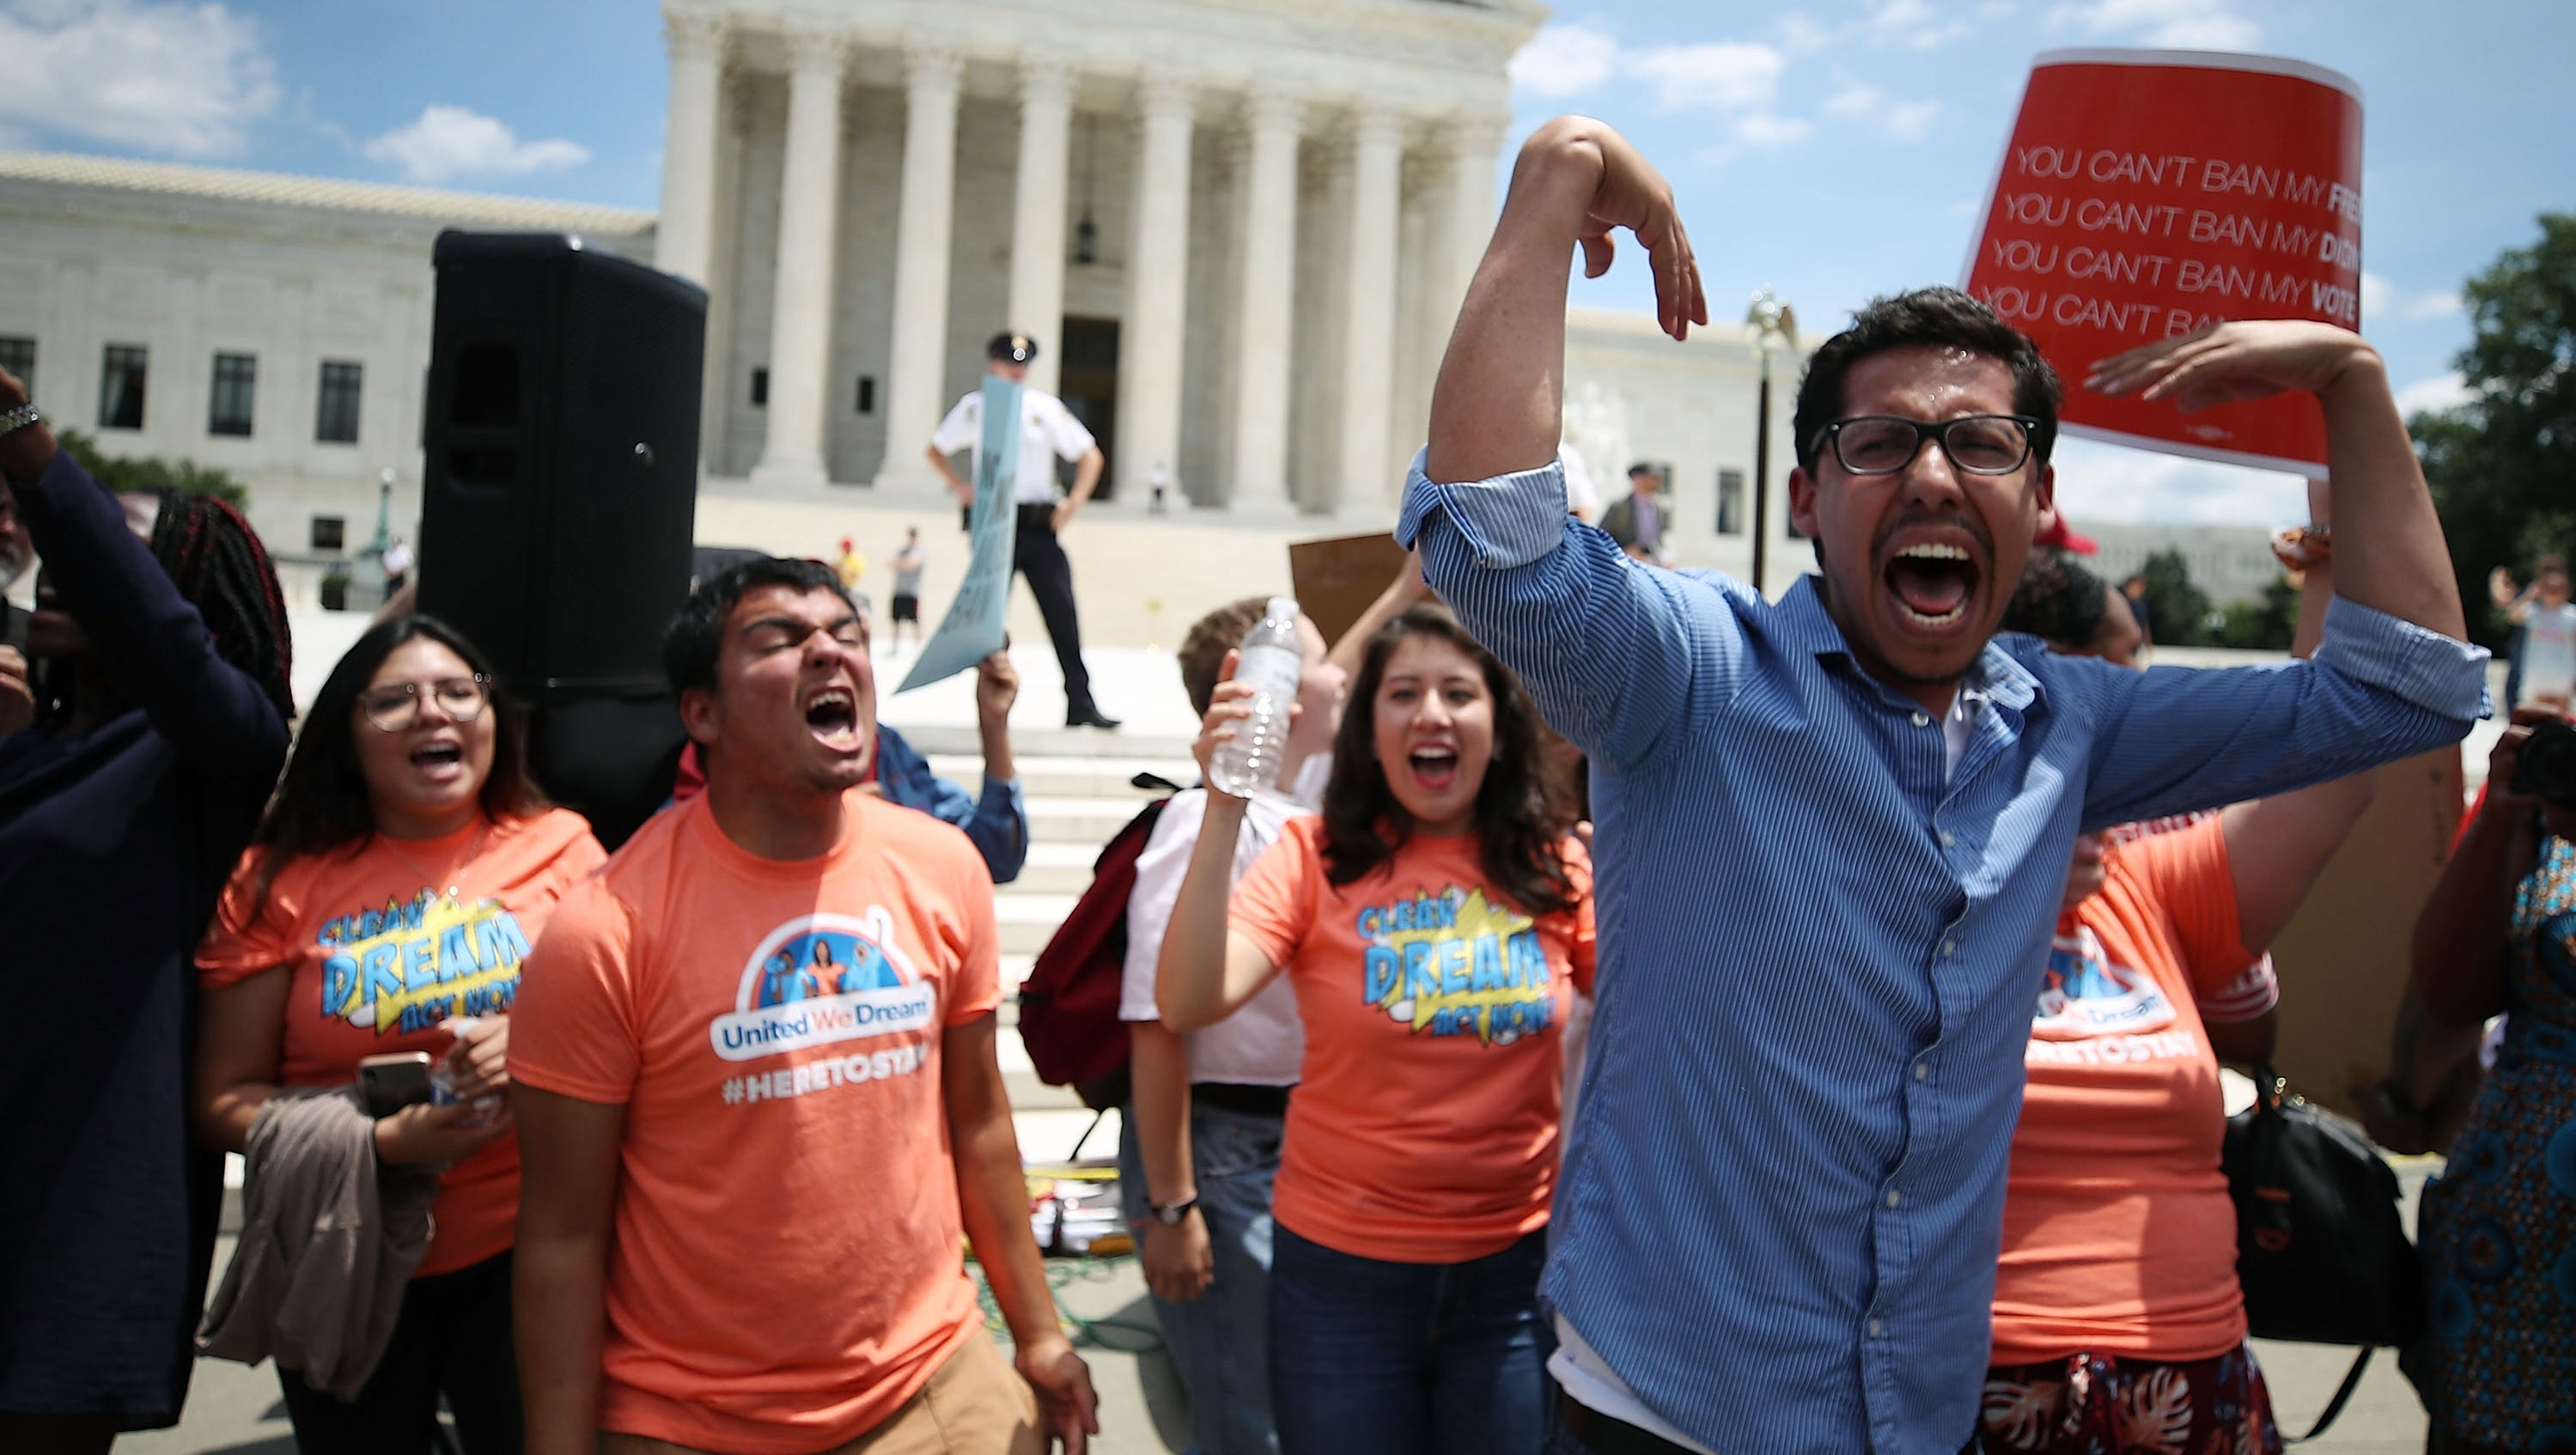 The Supreme Court agreed Monday to hear a case about Social Security identity fraud by undocumented immigrants, part of its increased focus on immigration laws.